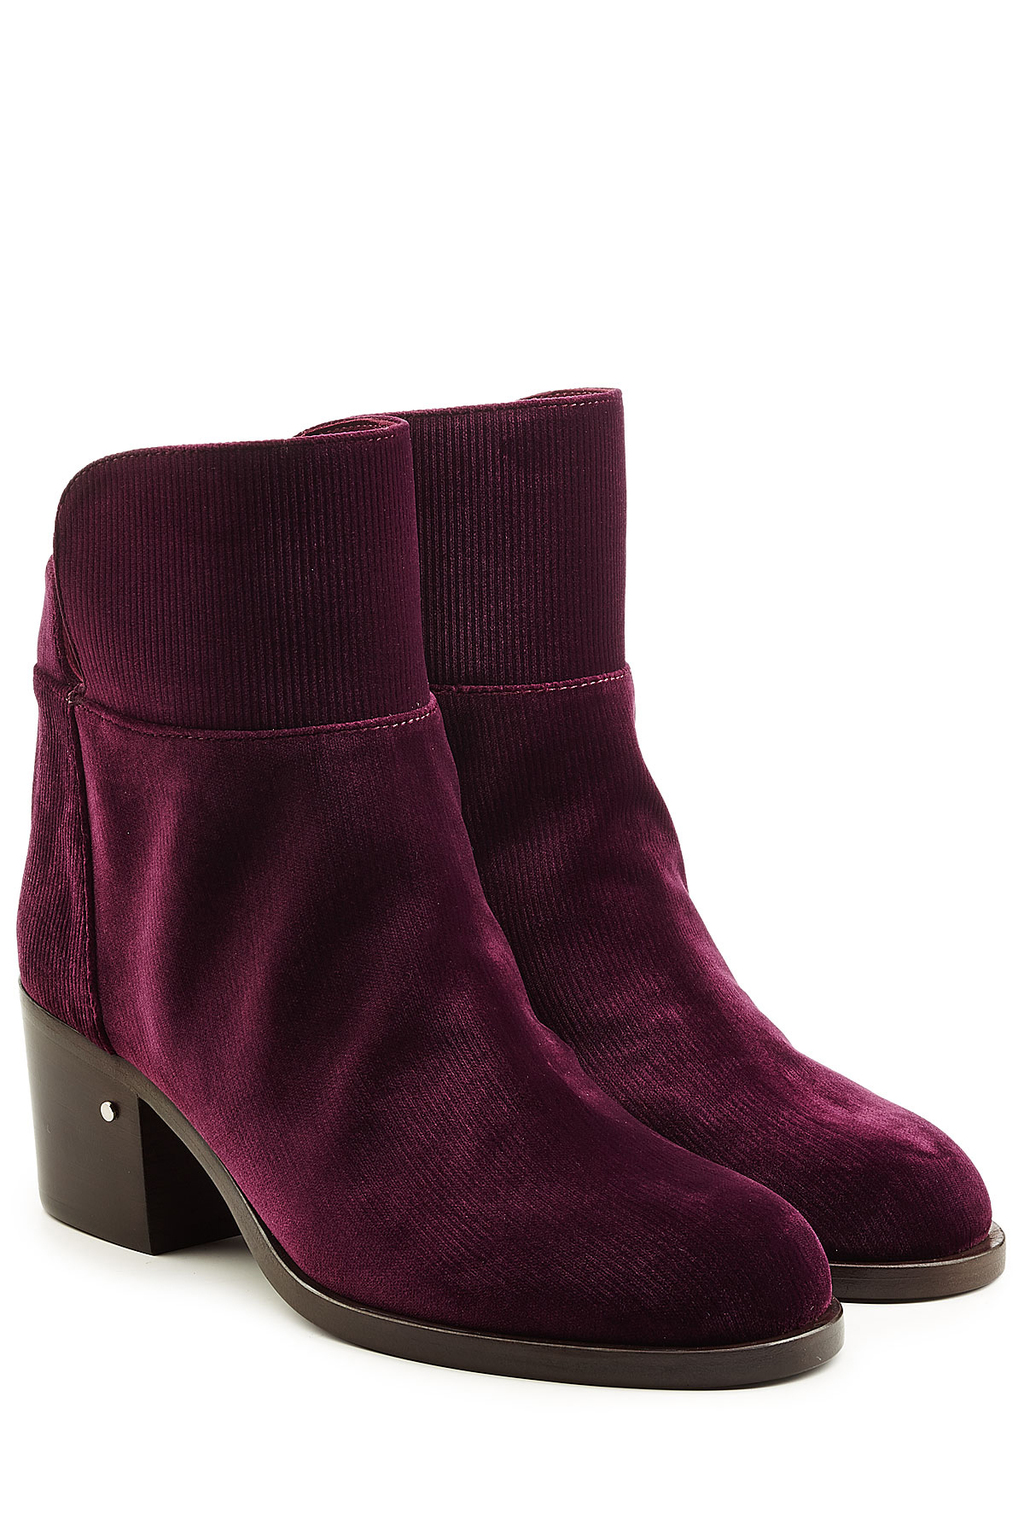 Velvet Ankle Boots - predominant colour: burgundy; occasions: casual; material: velvet; heel height: mid; heel: block; toe: round toe; boot length: ankle boot; style: standard; finish: plain; pattern: plain; season: a/w 2016; wardrobe: highlight